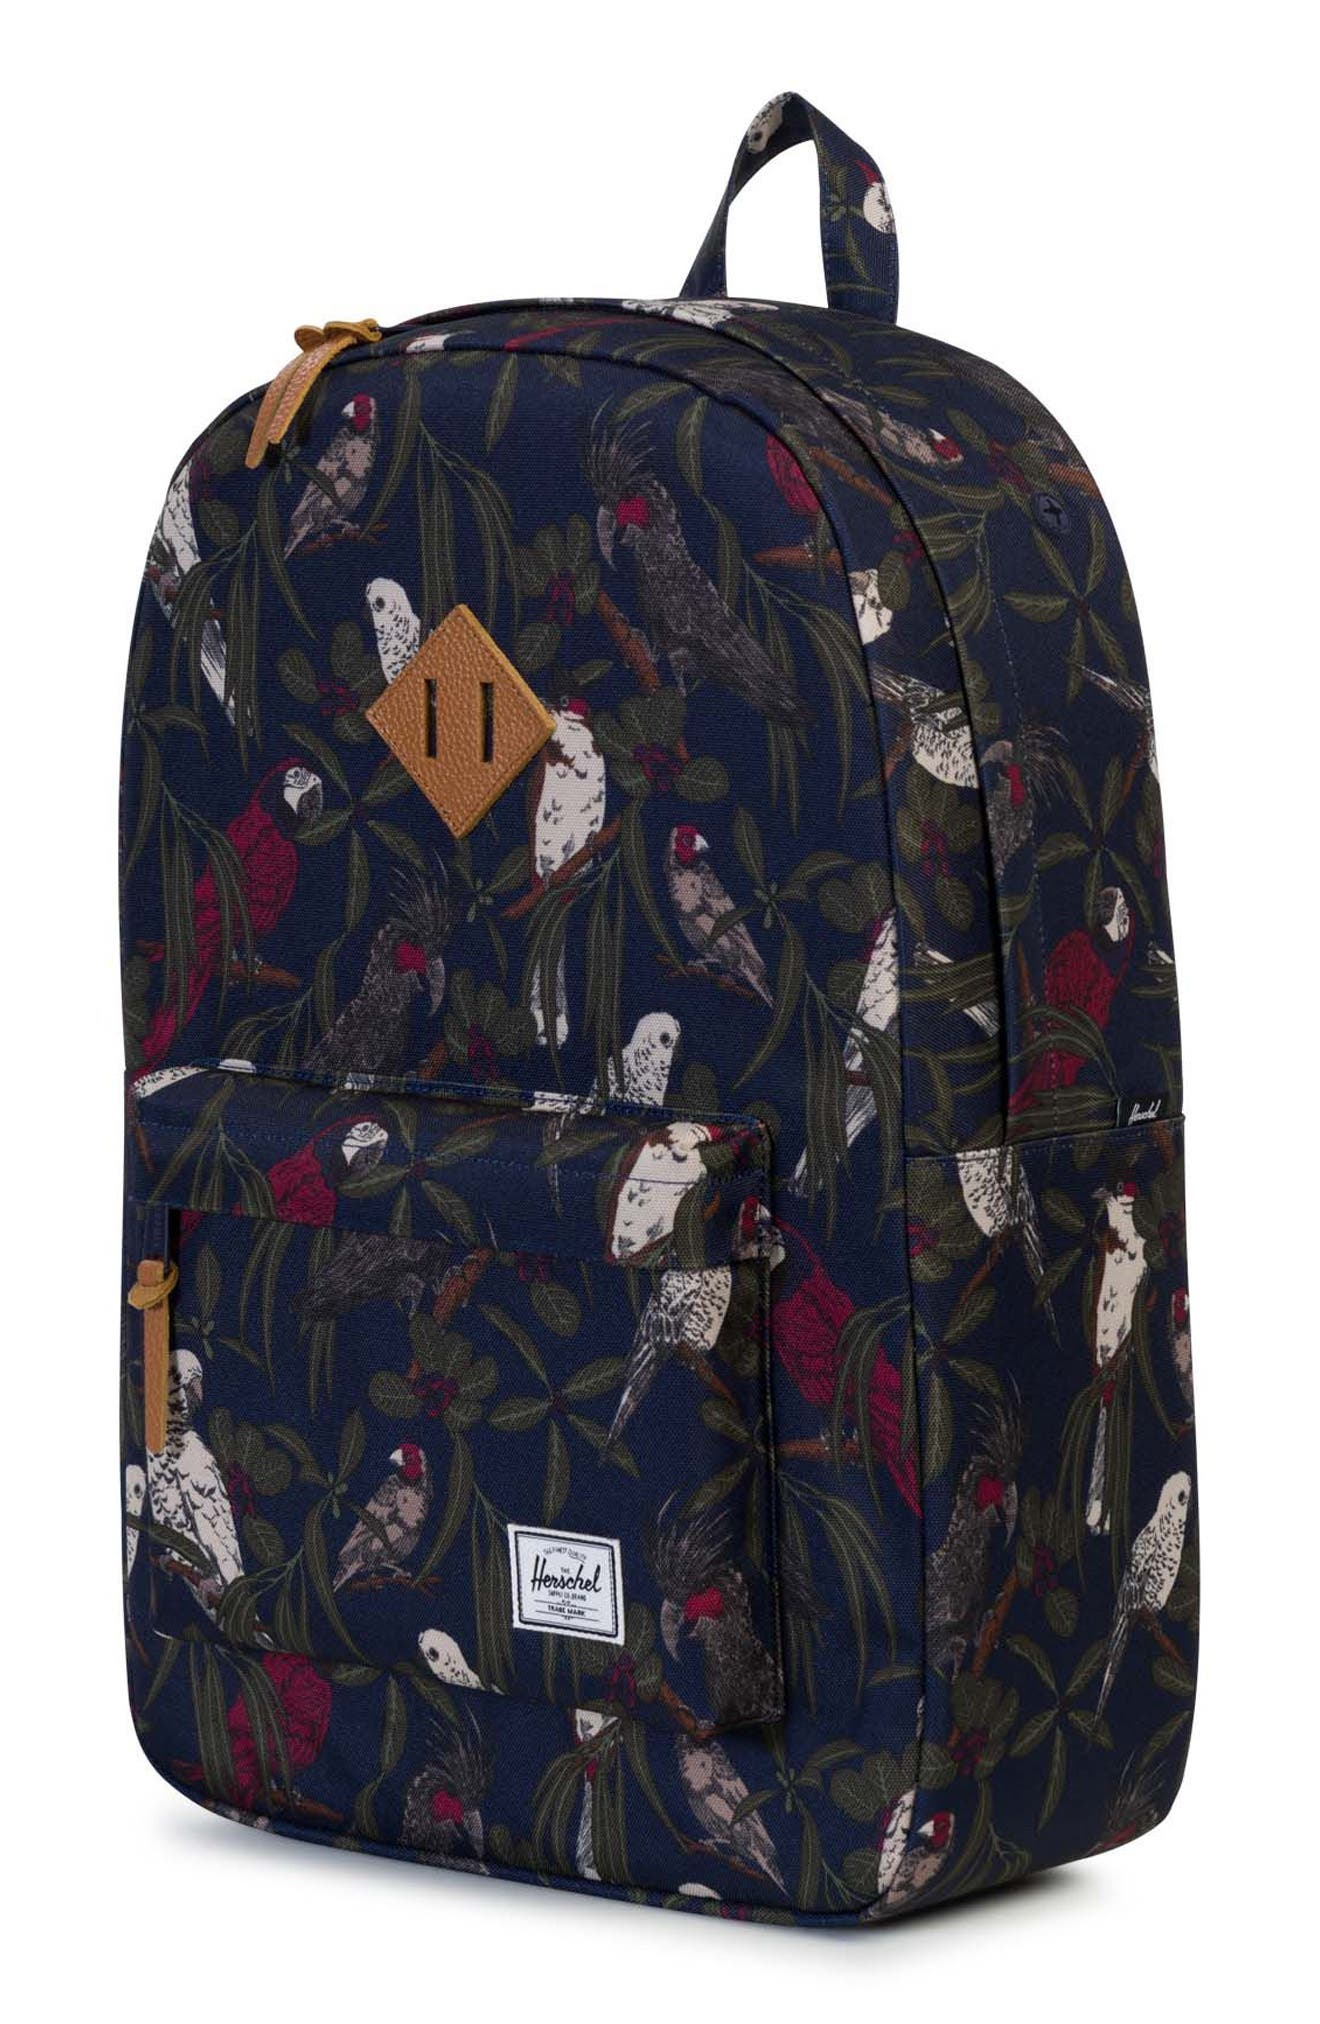 Heritage Backpack,                             Alternate thumbnail 4, color,                             Peacoat Parlour